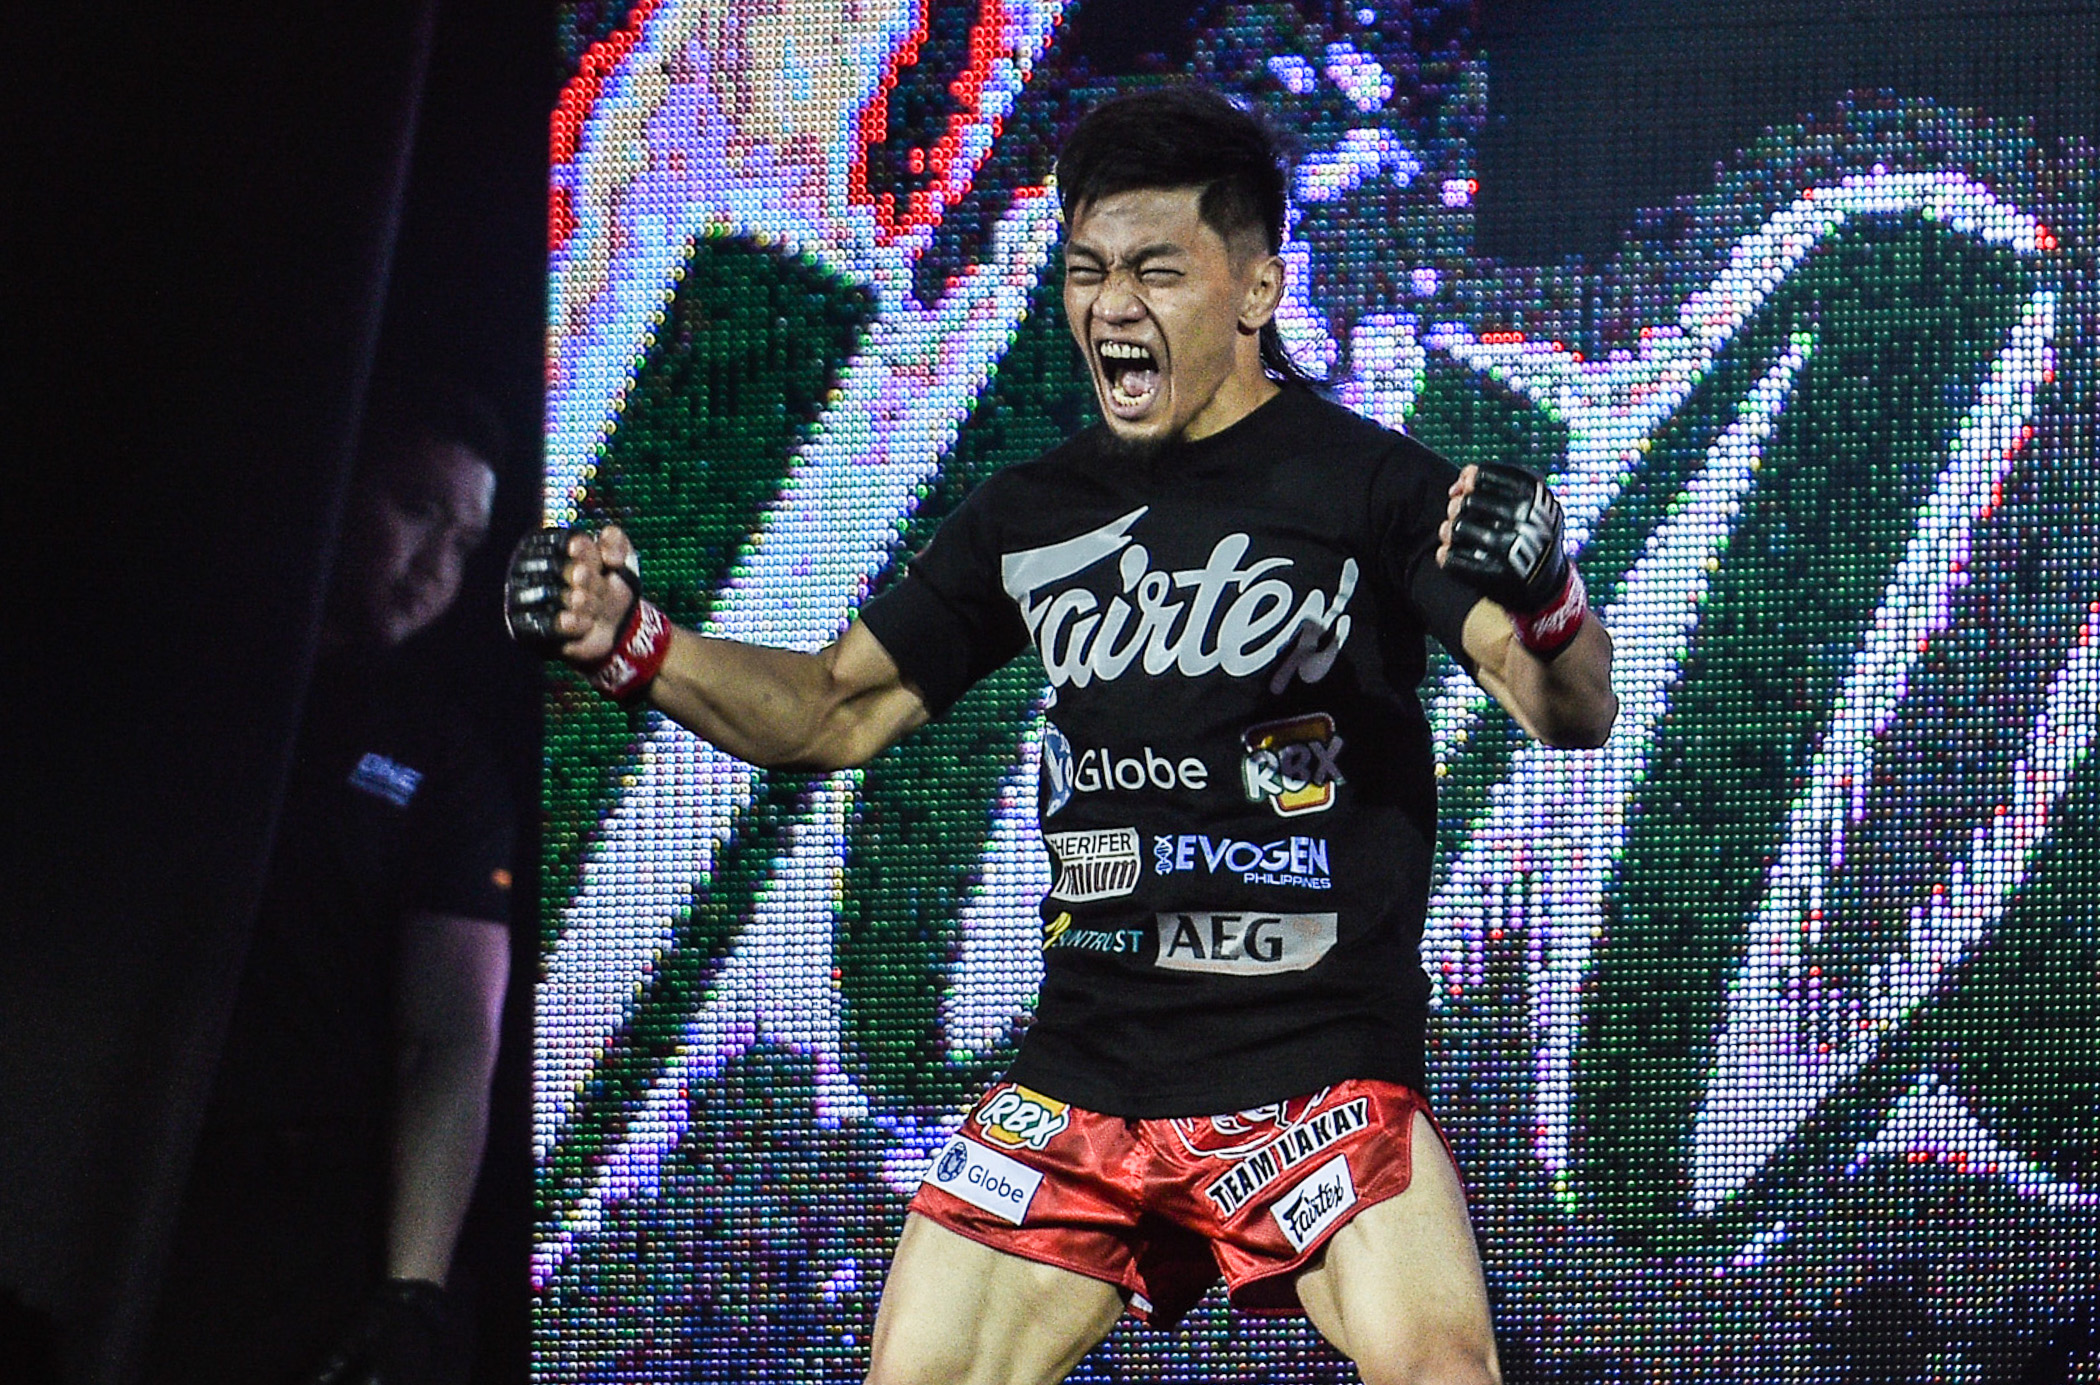 Adiwang targets ex-champ Naito: I'm ready for the big fights